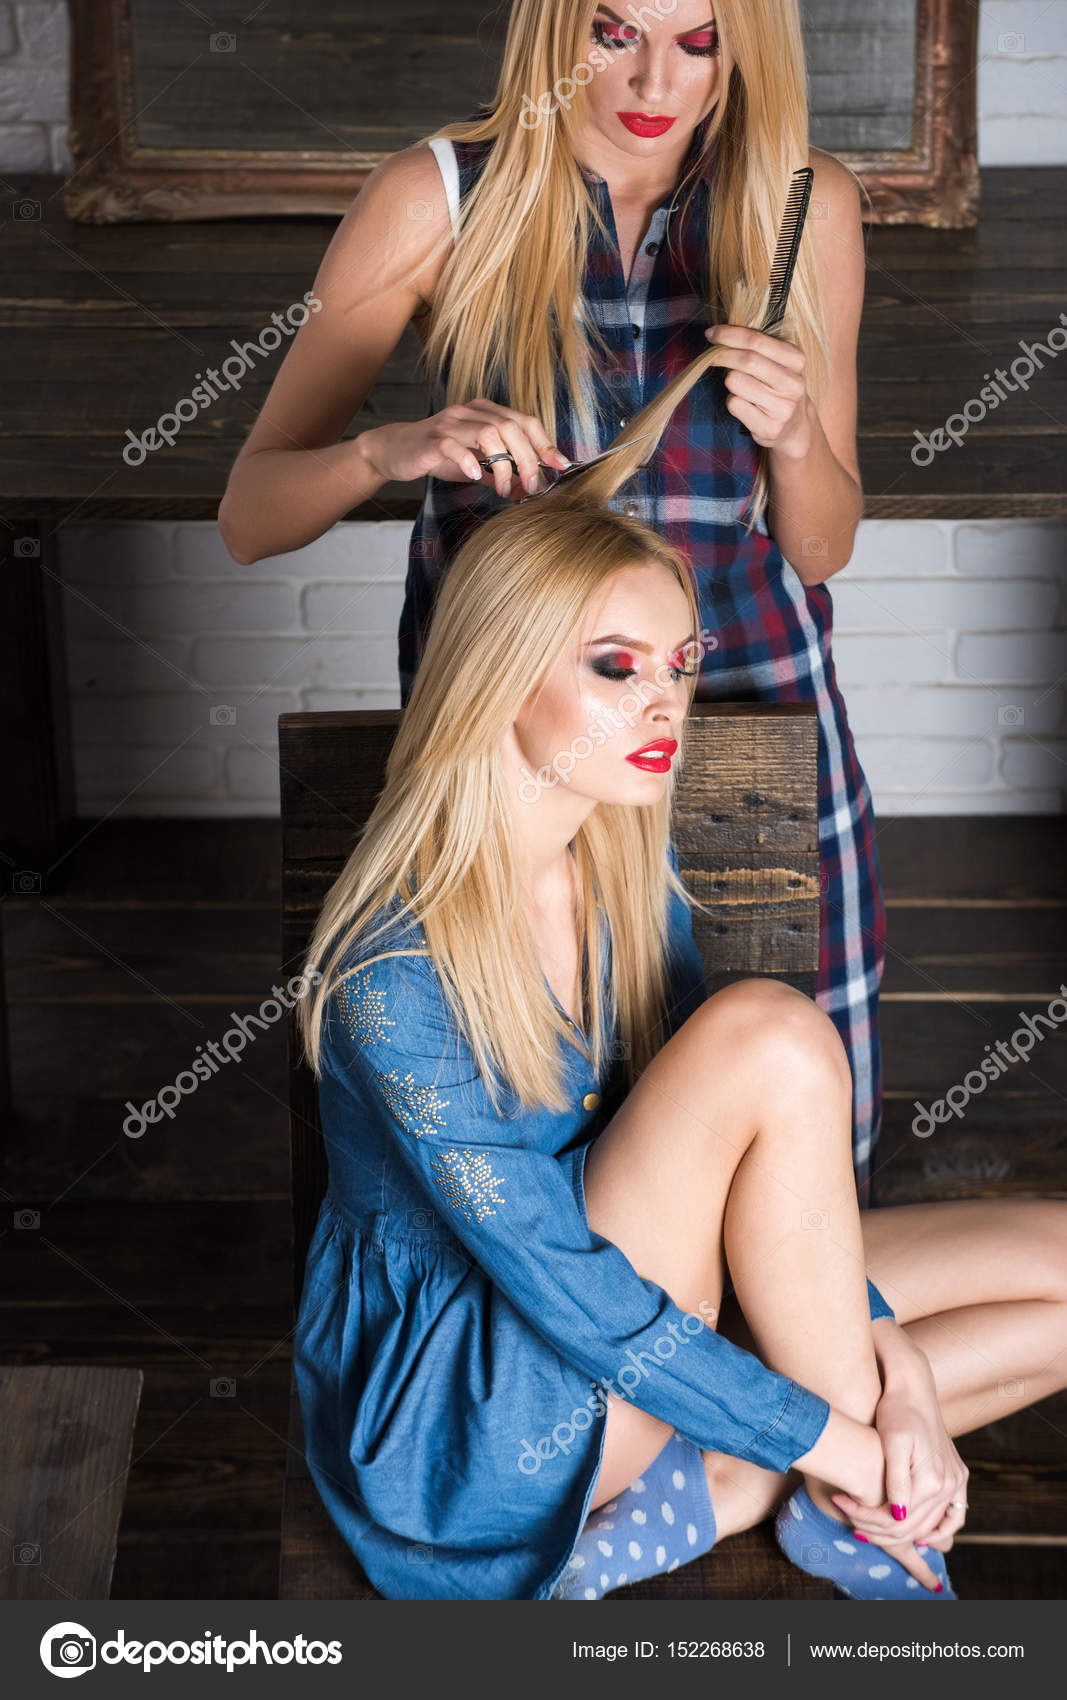 Salon Erotic Pretty Sexy Girls In Beauty Salon Hairdresser Makes